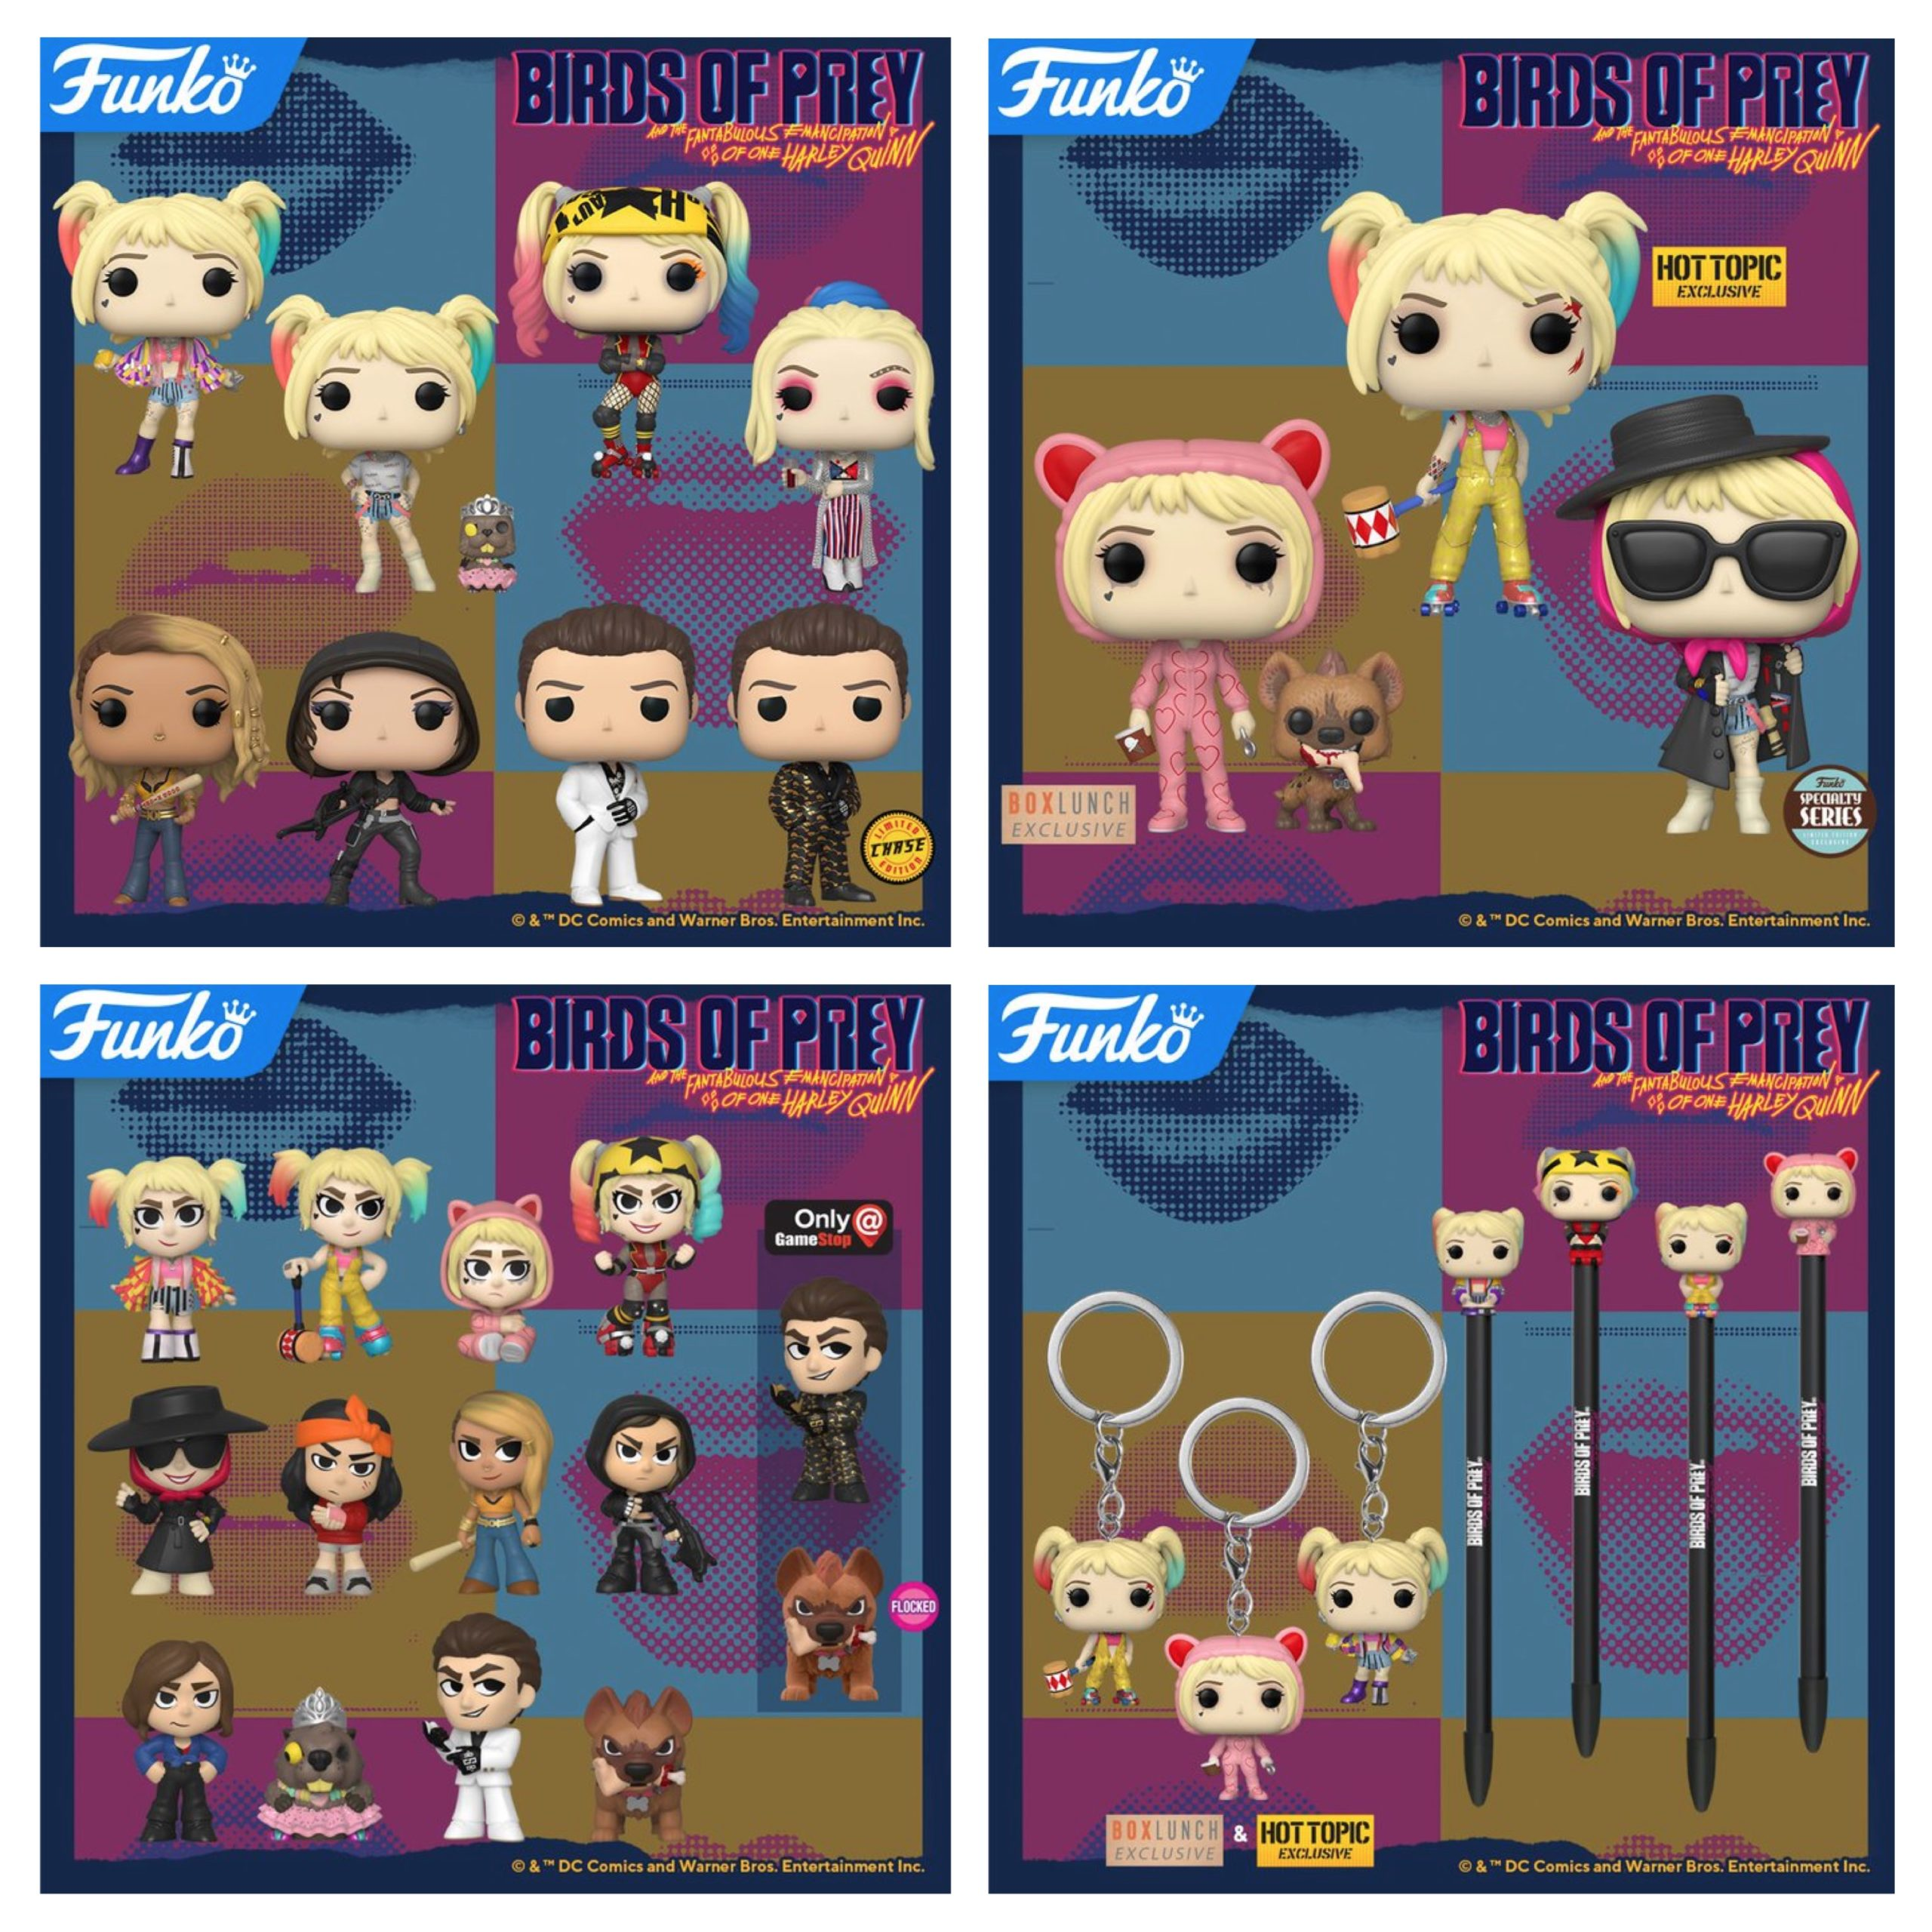 New Collection Of Birds Of Prey Pop Vinyls Mystery Minis Pocket Pop Keychains And Pop Pens Coming Soon Pop Vinyl World